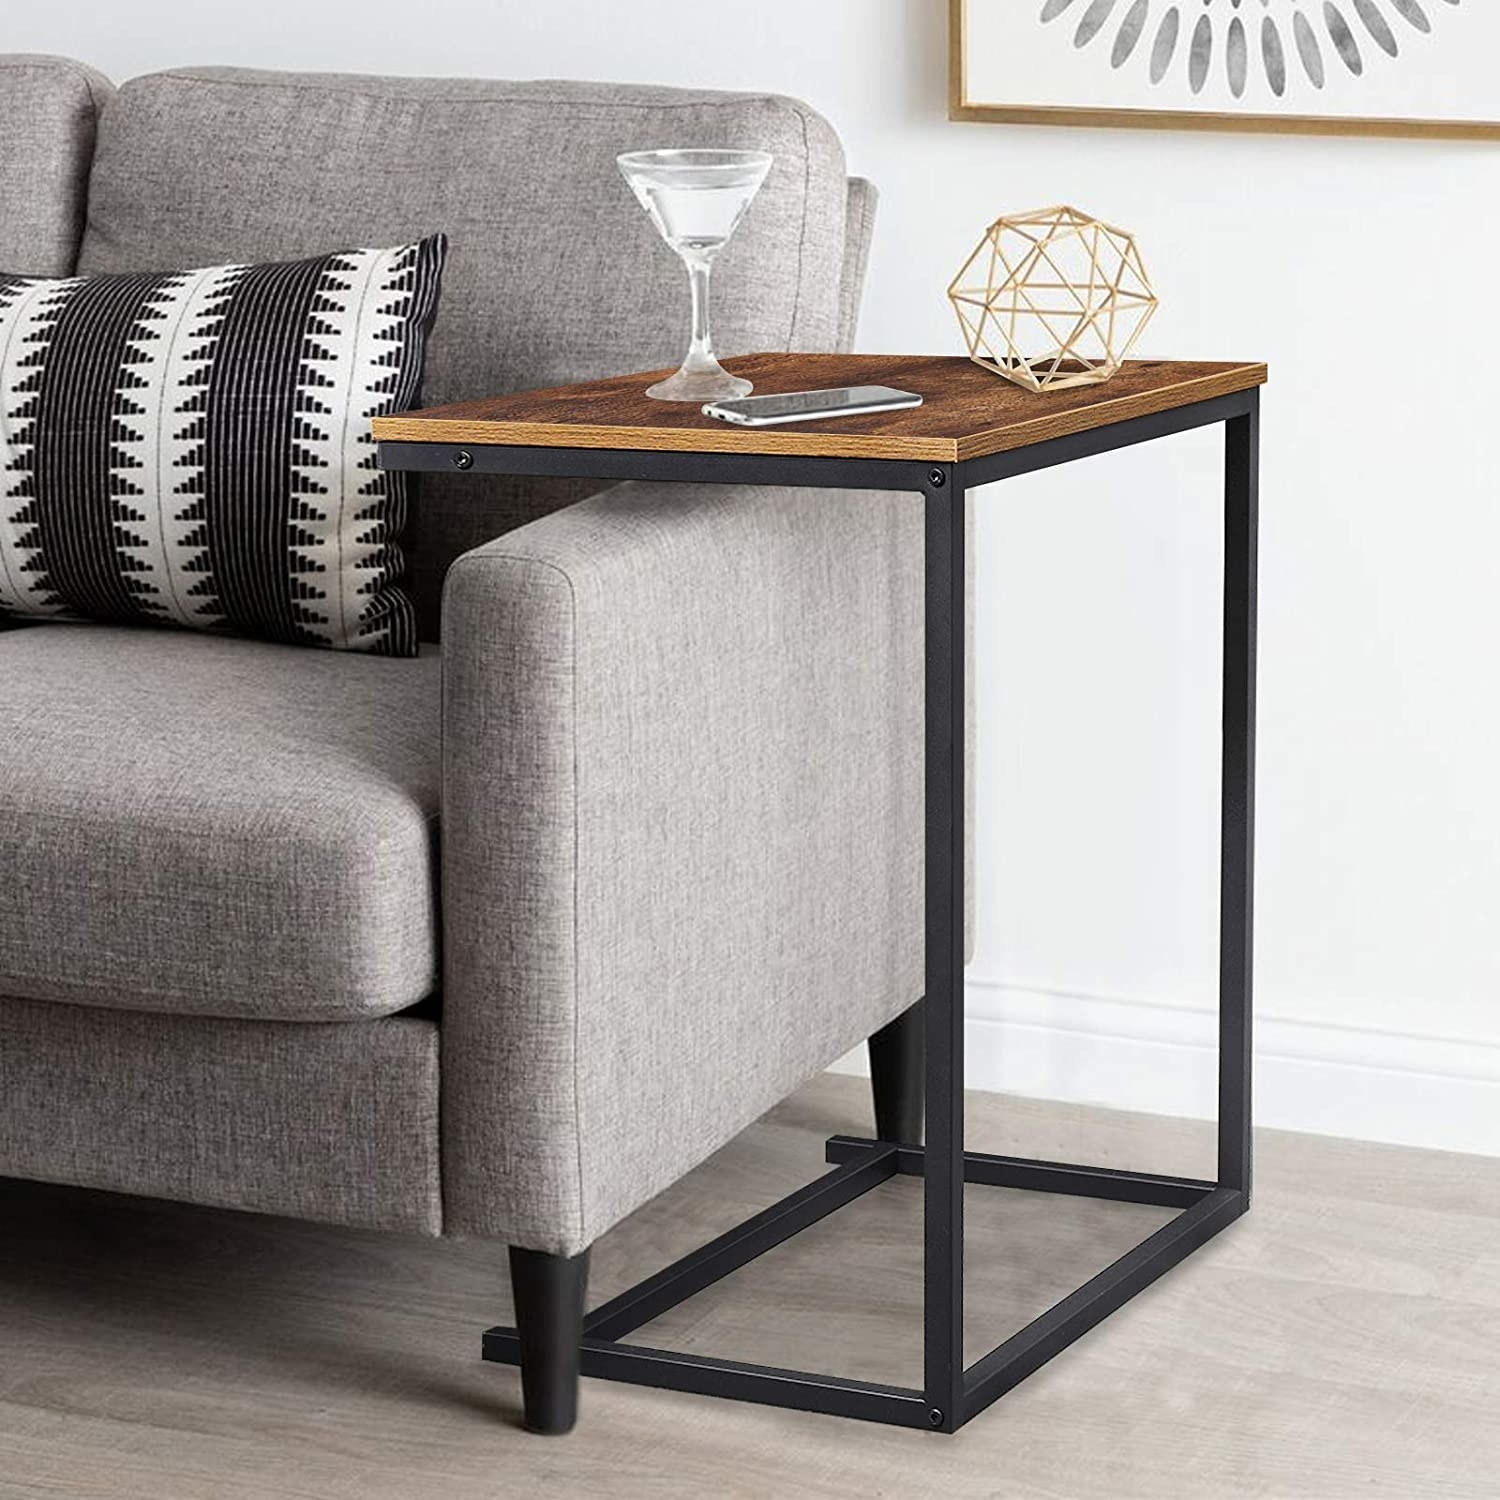 The vintage wooden C-shaped table